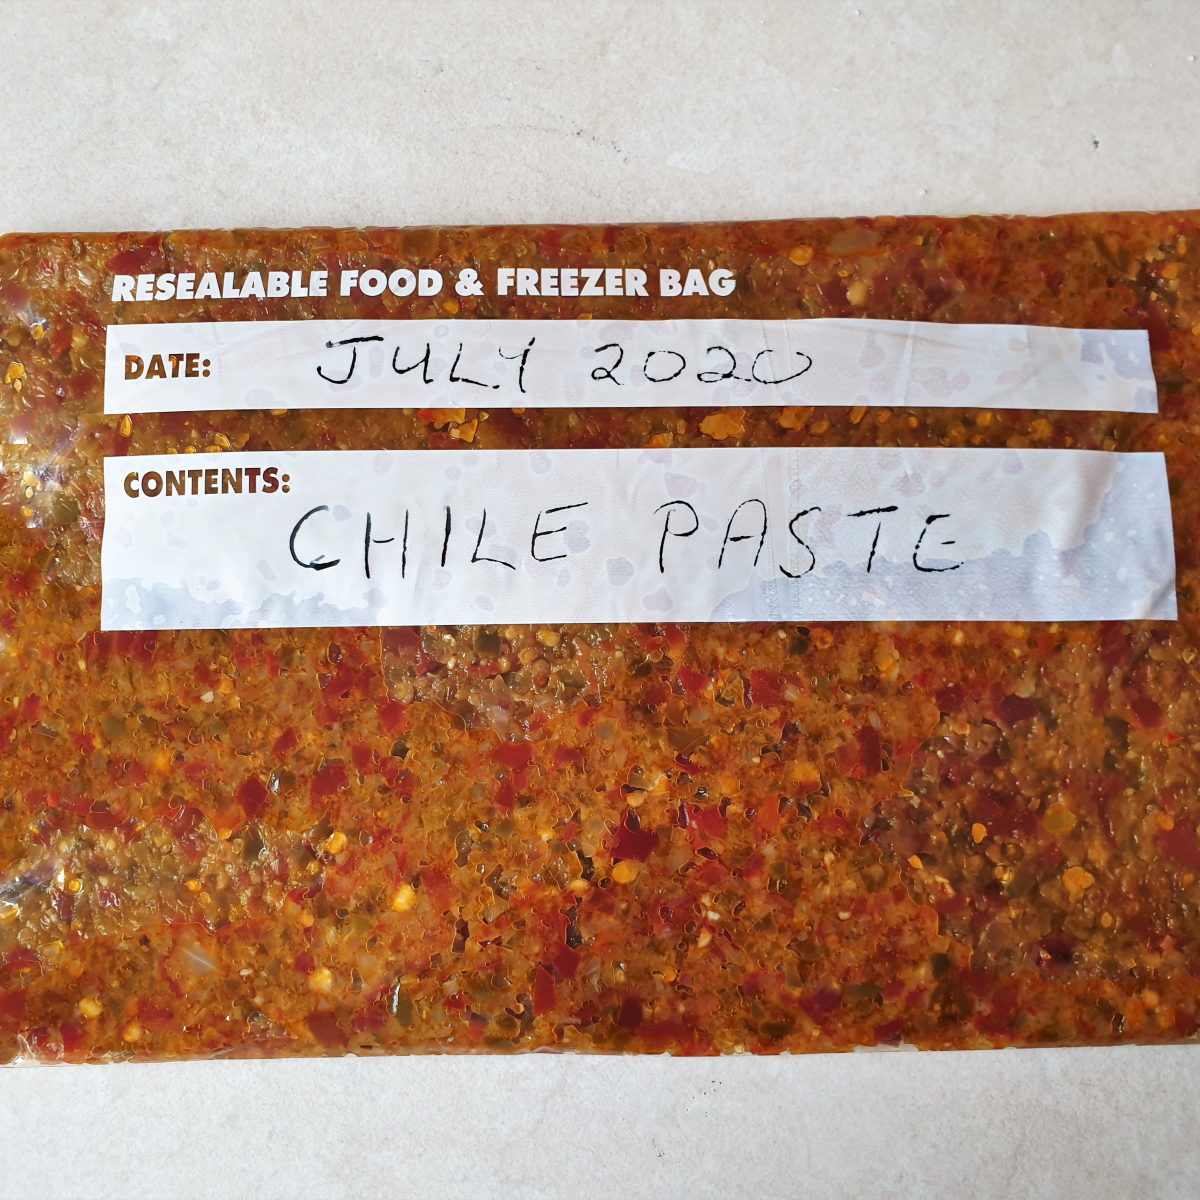 A packet of jalapeno chili paste ready for the freezer.